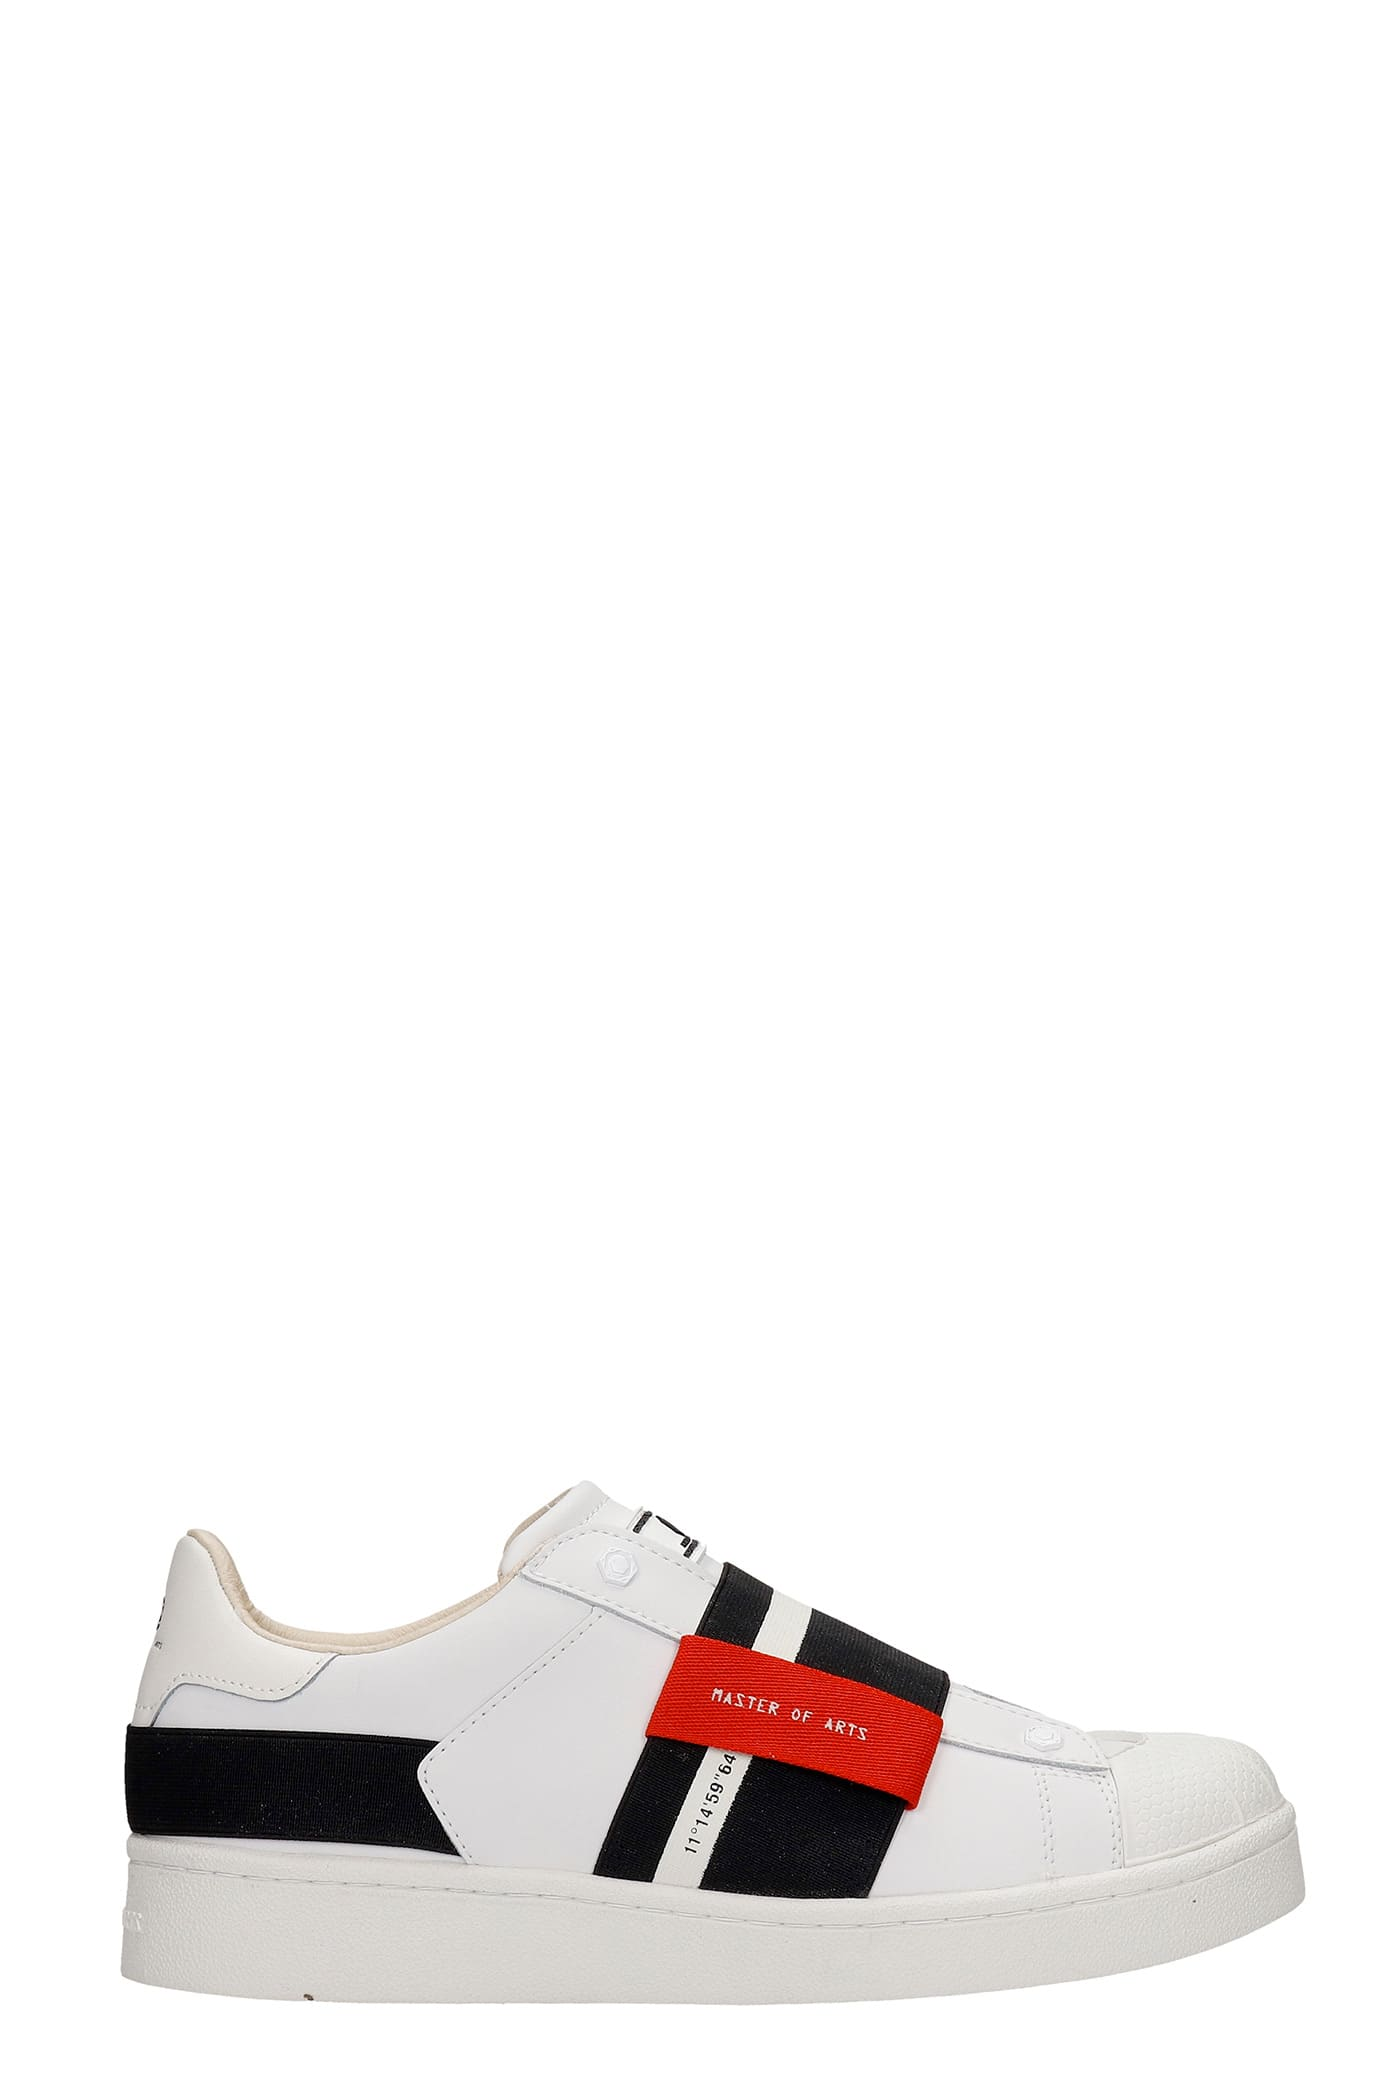 M.O.A. master of arts Sneakers In White Leather